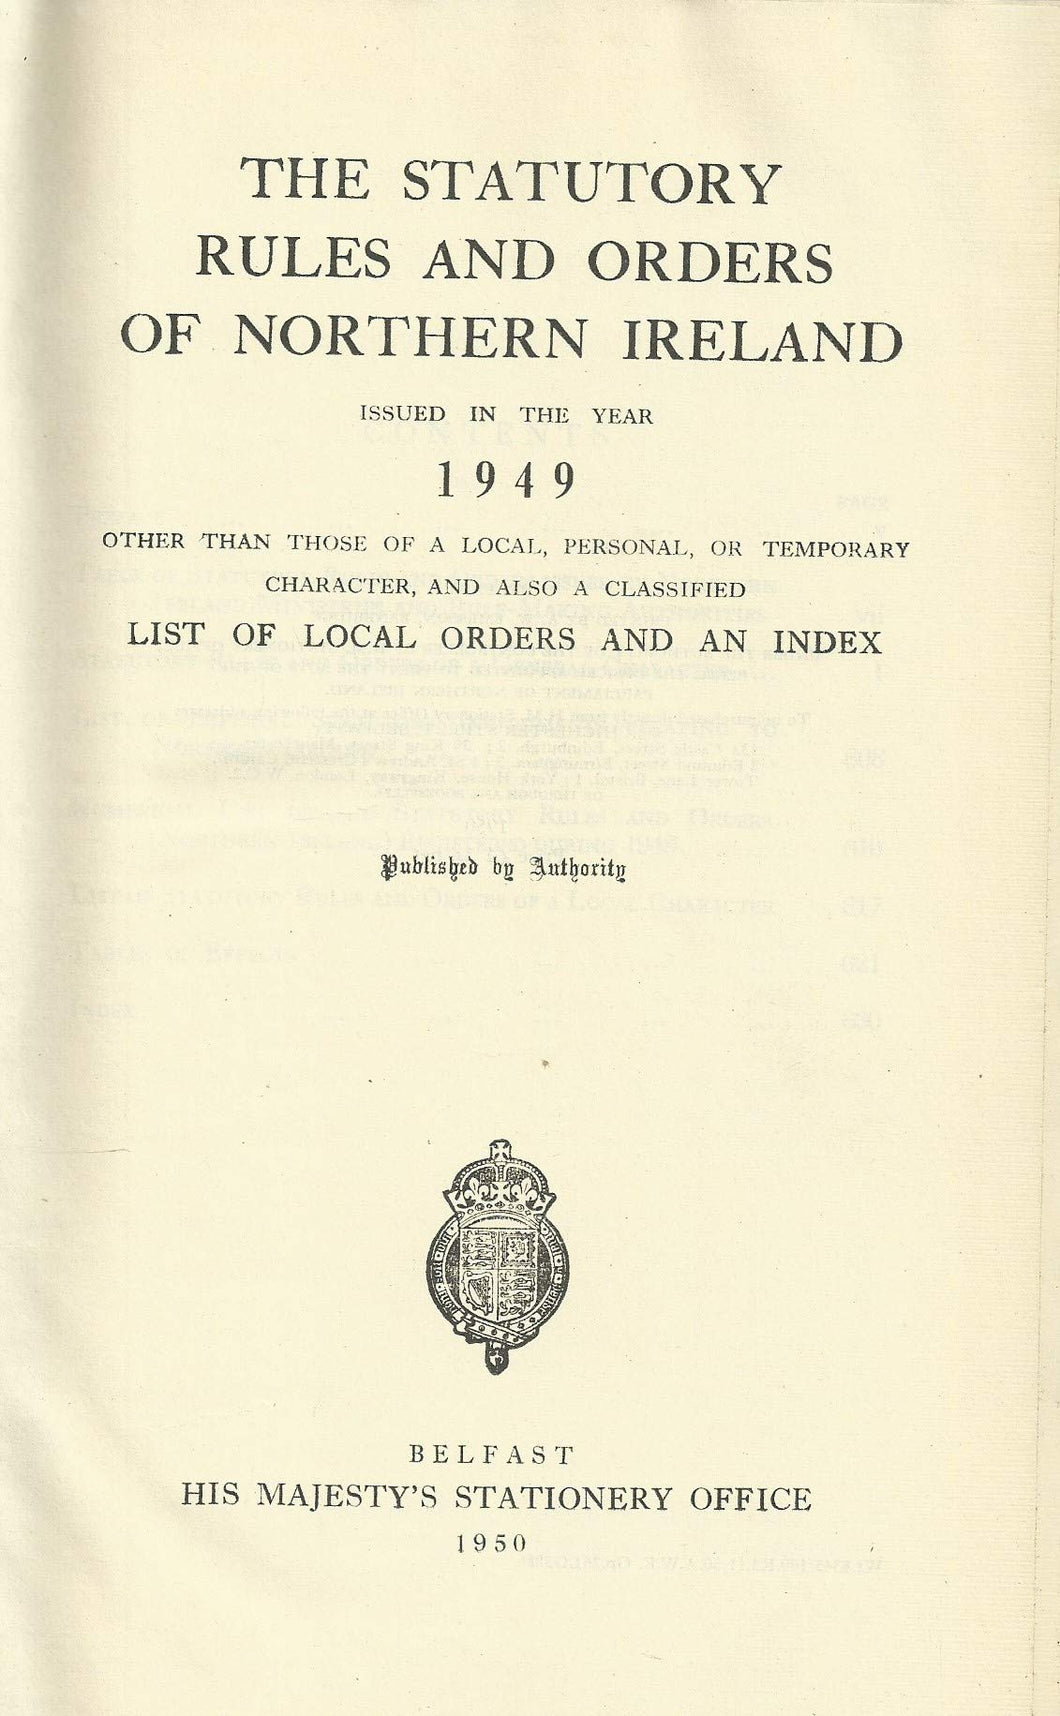 Northern Ireland Statutory Rules and Orders, 1949 - The Statutory Rules and Orders of Northern Ireland